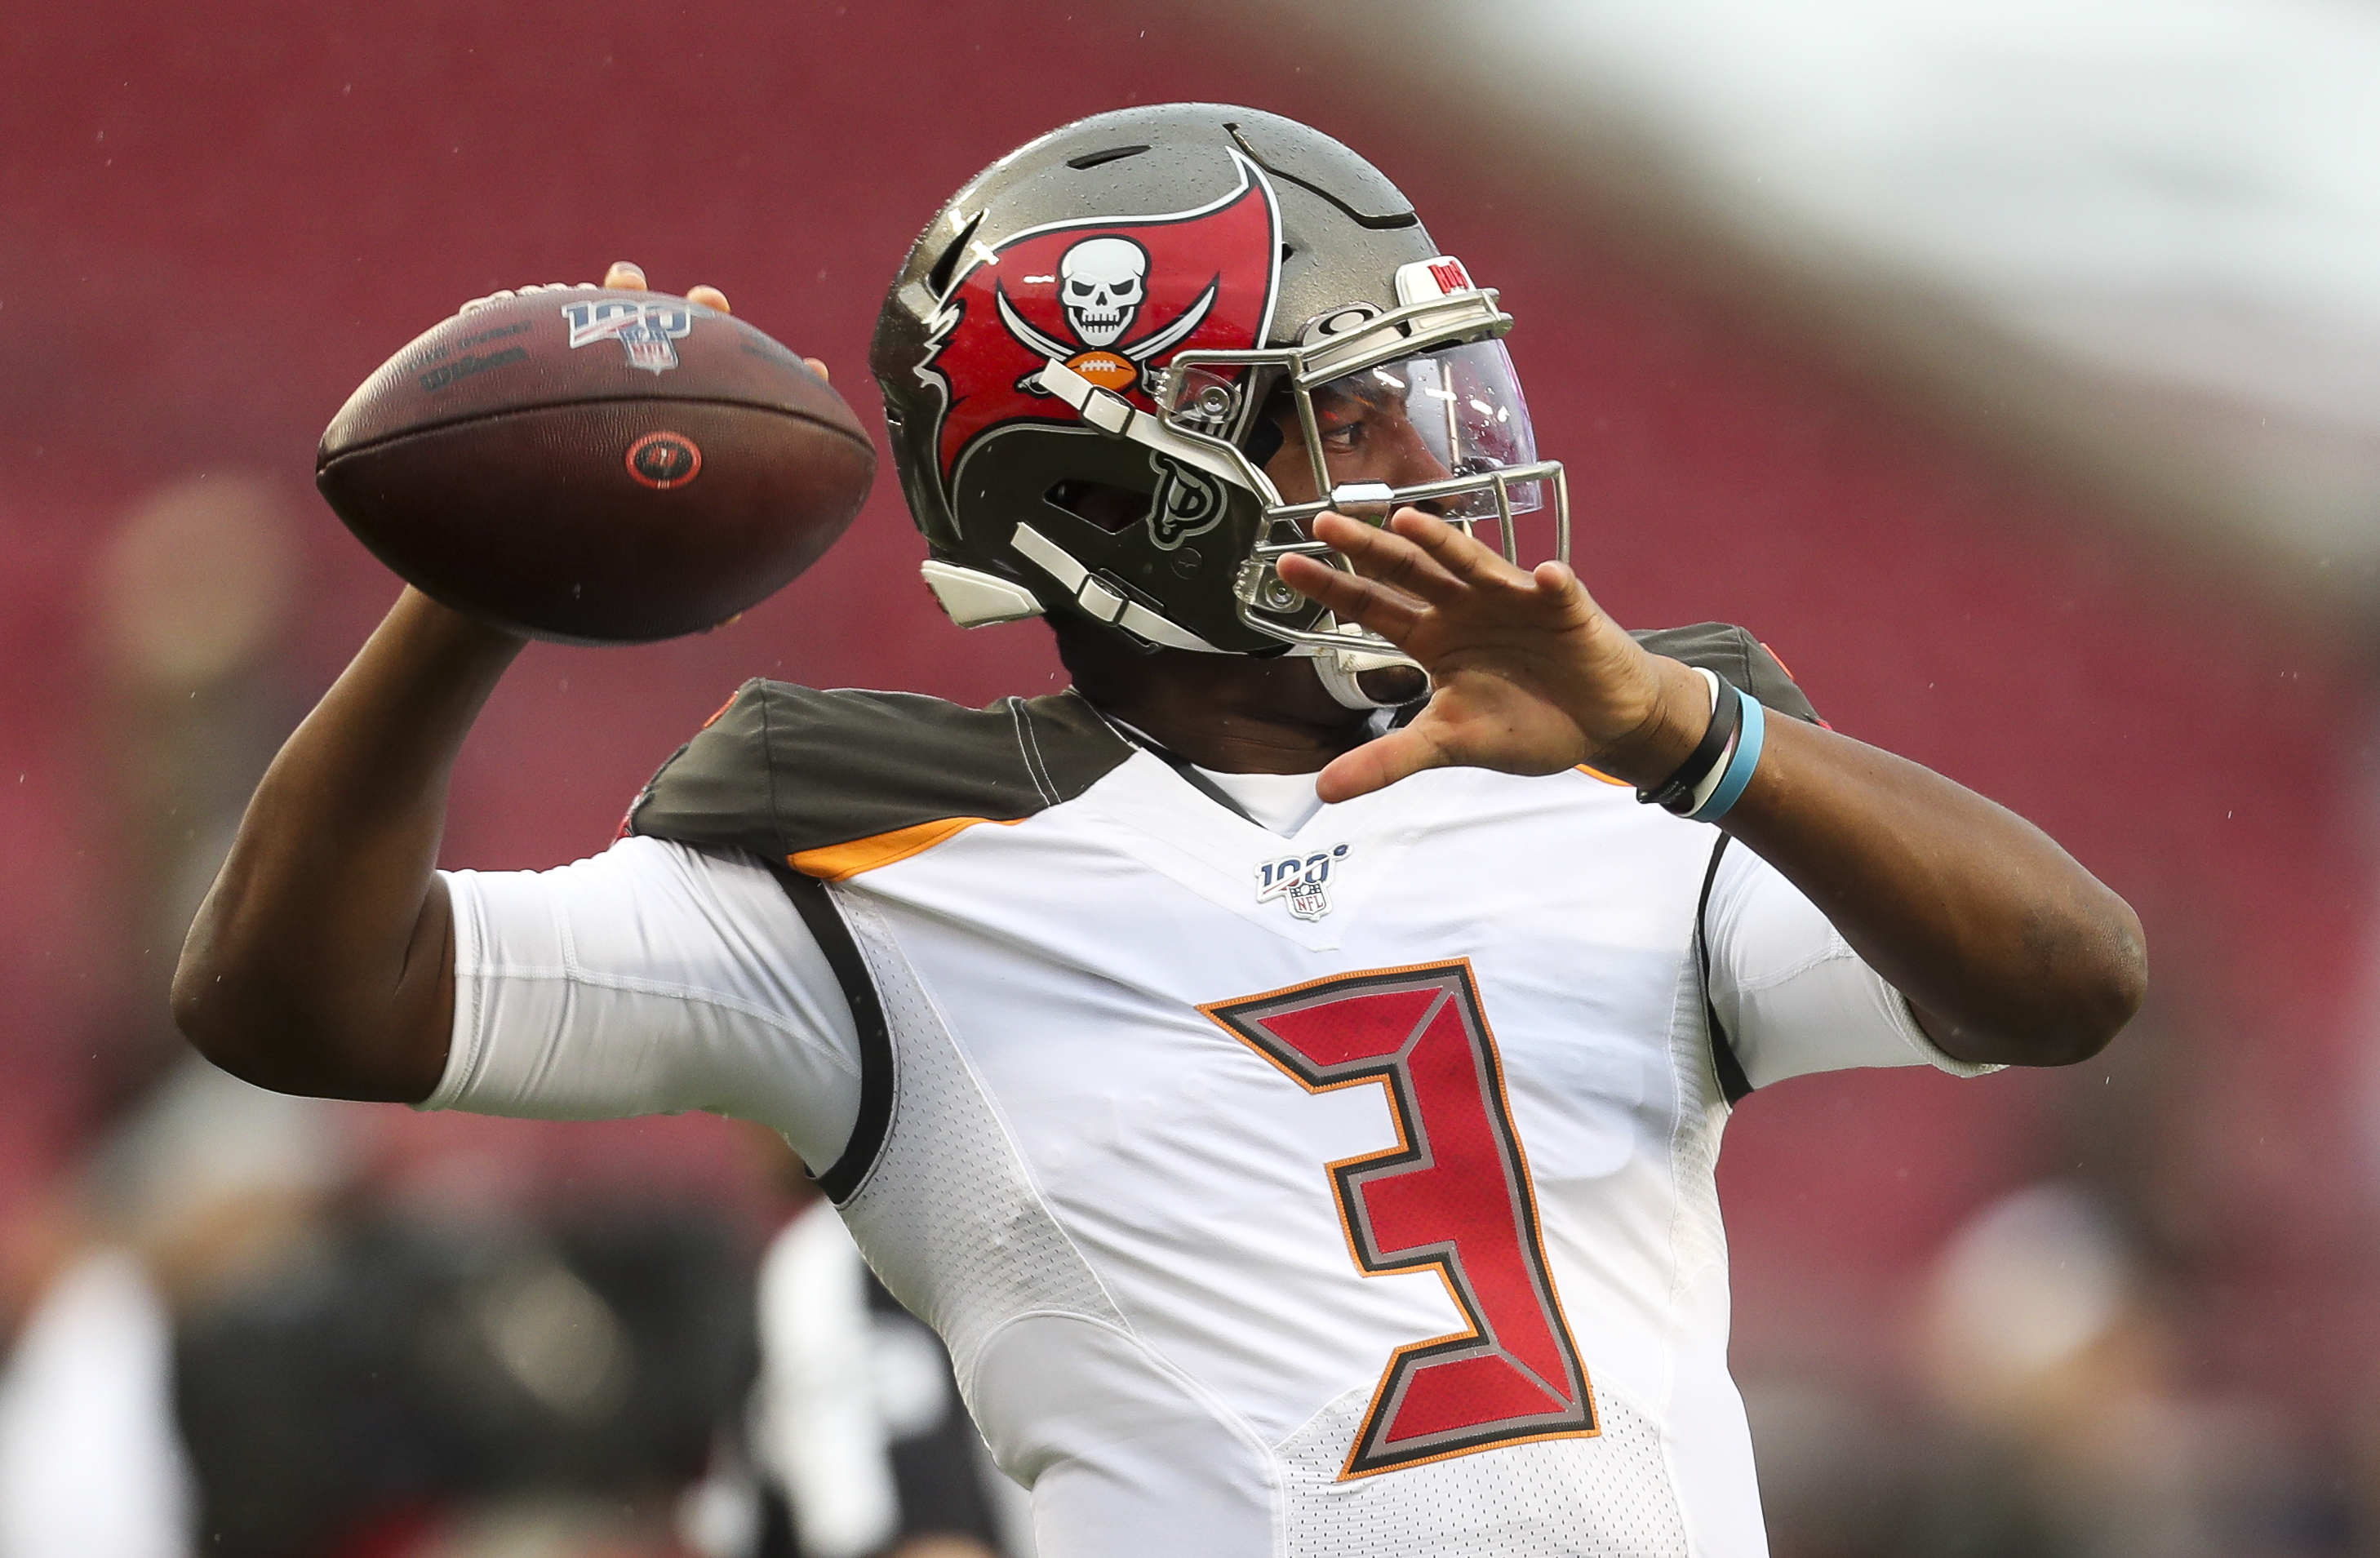 Bucs vs. Browns: What to watch for